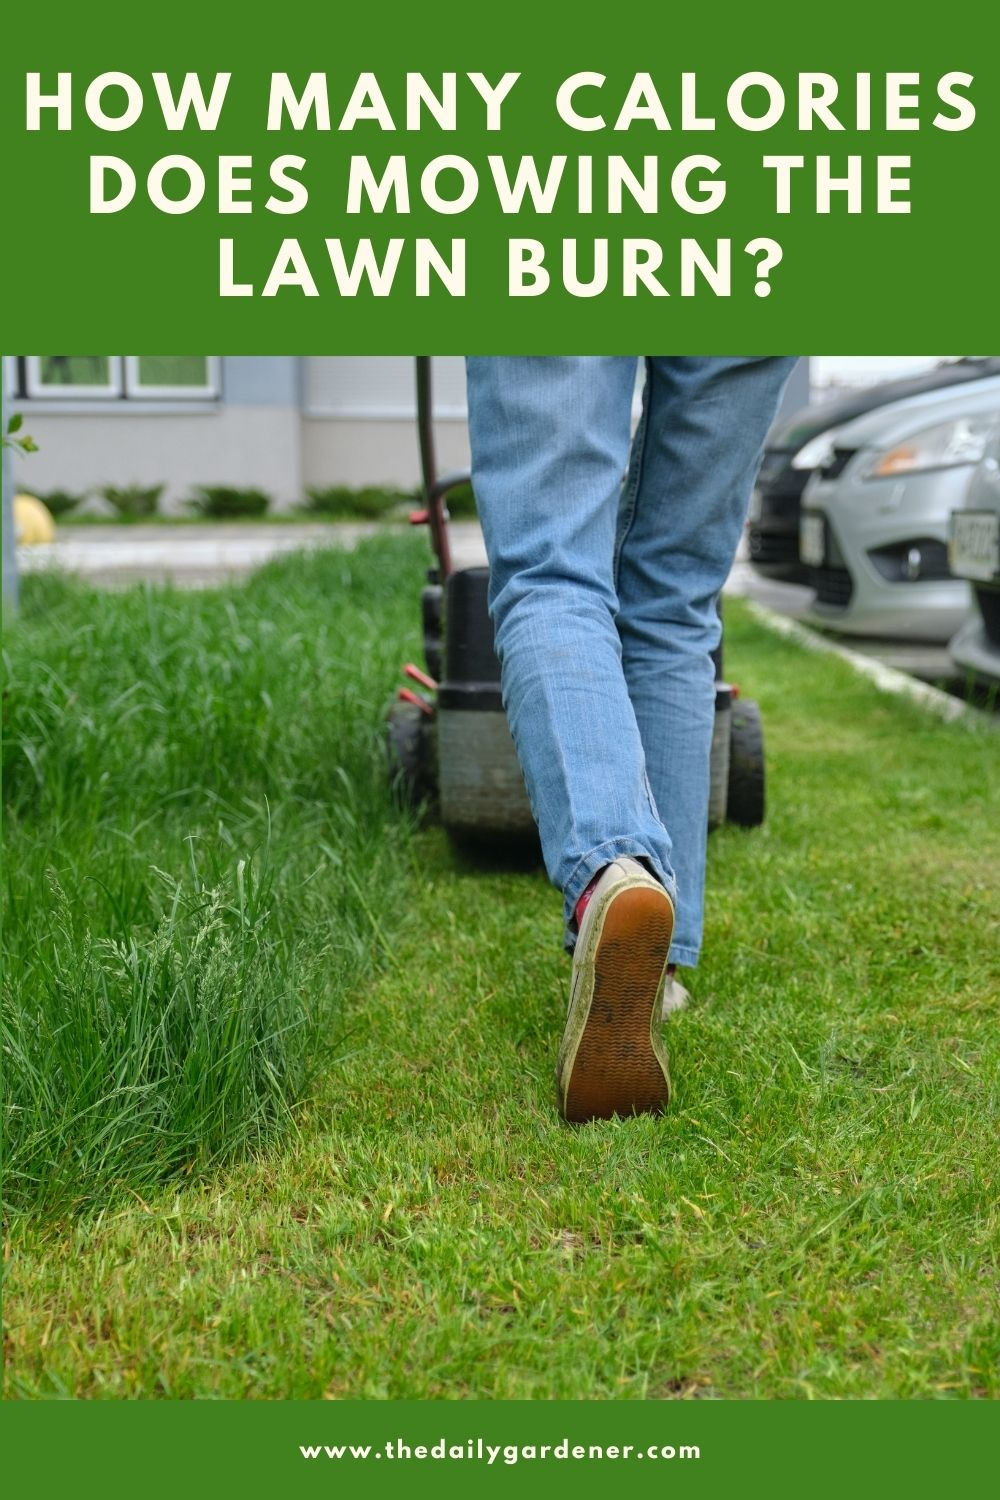 How Many Calories Does Mowing the Lawn Burn 2